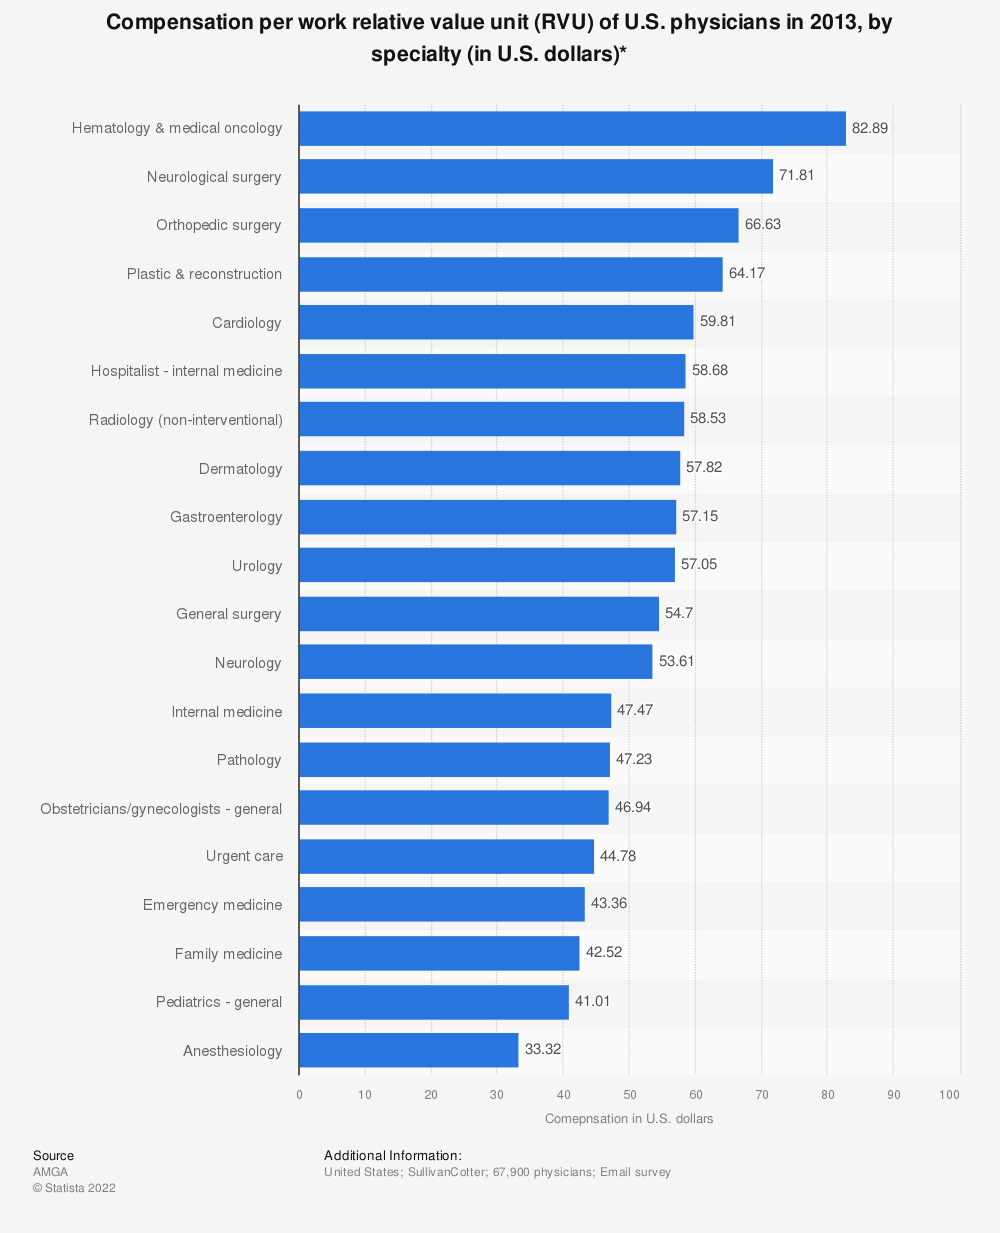 Statistic: Compensation per work relative value unit (RVU) of U.S. physicians in 2013, by specialty (in U.S. dollars)* | Statista